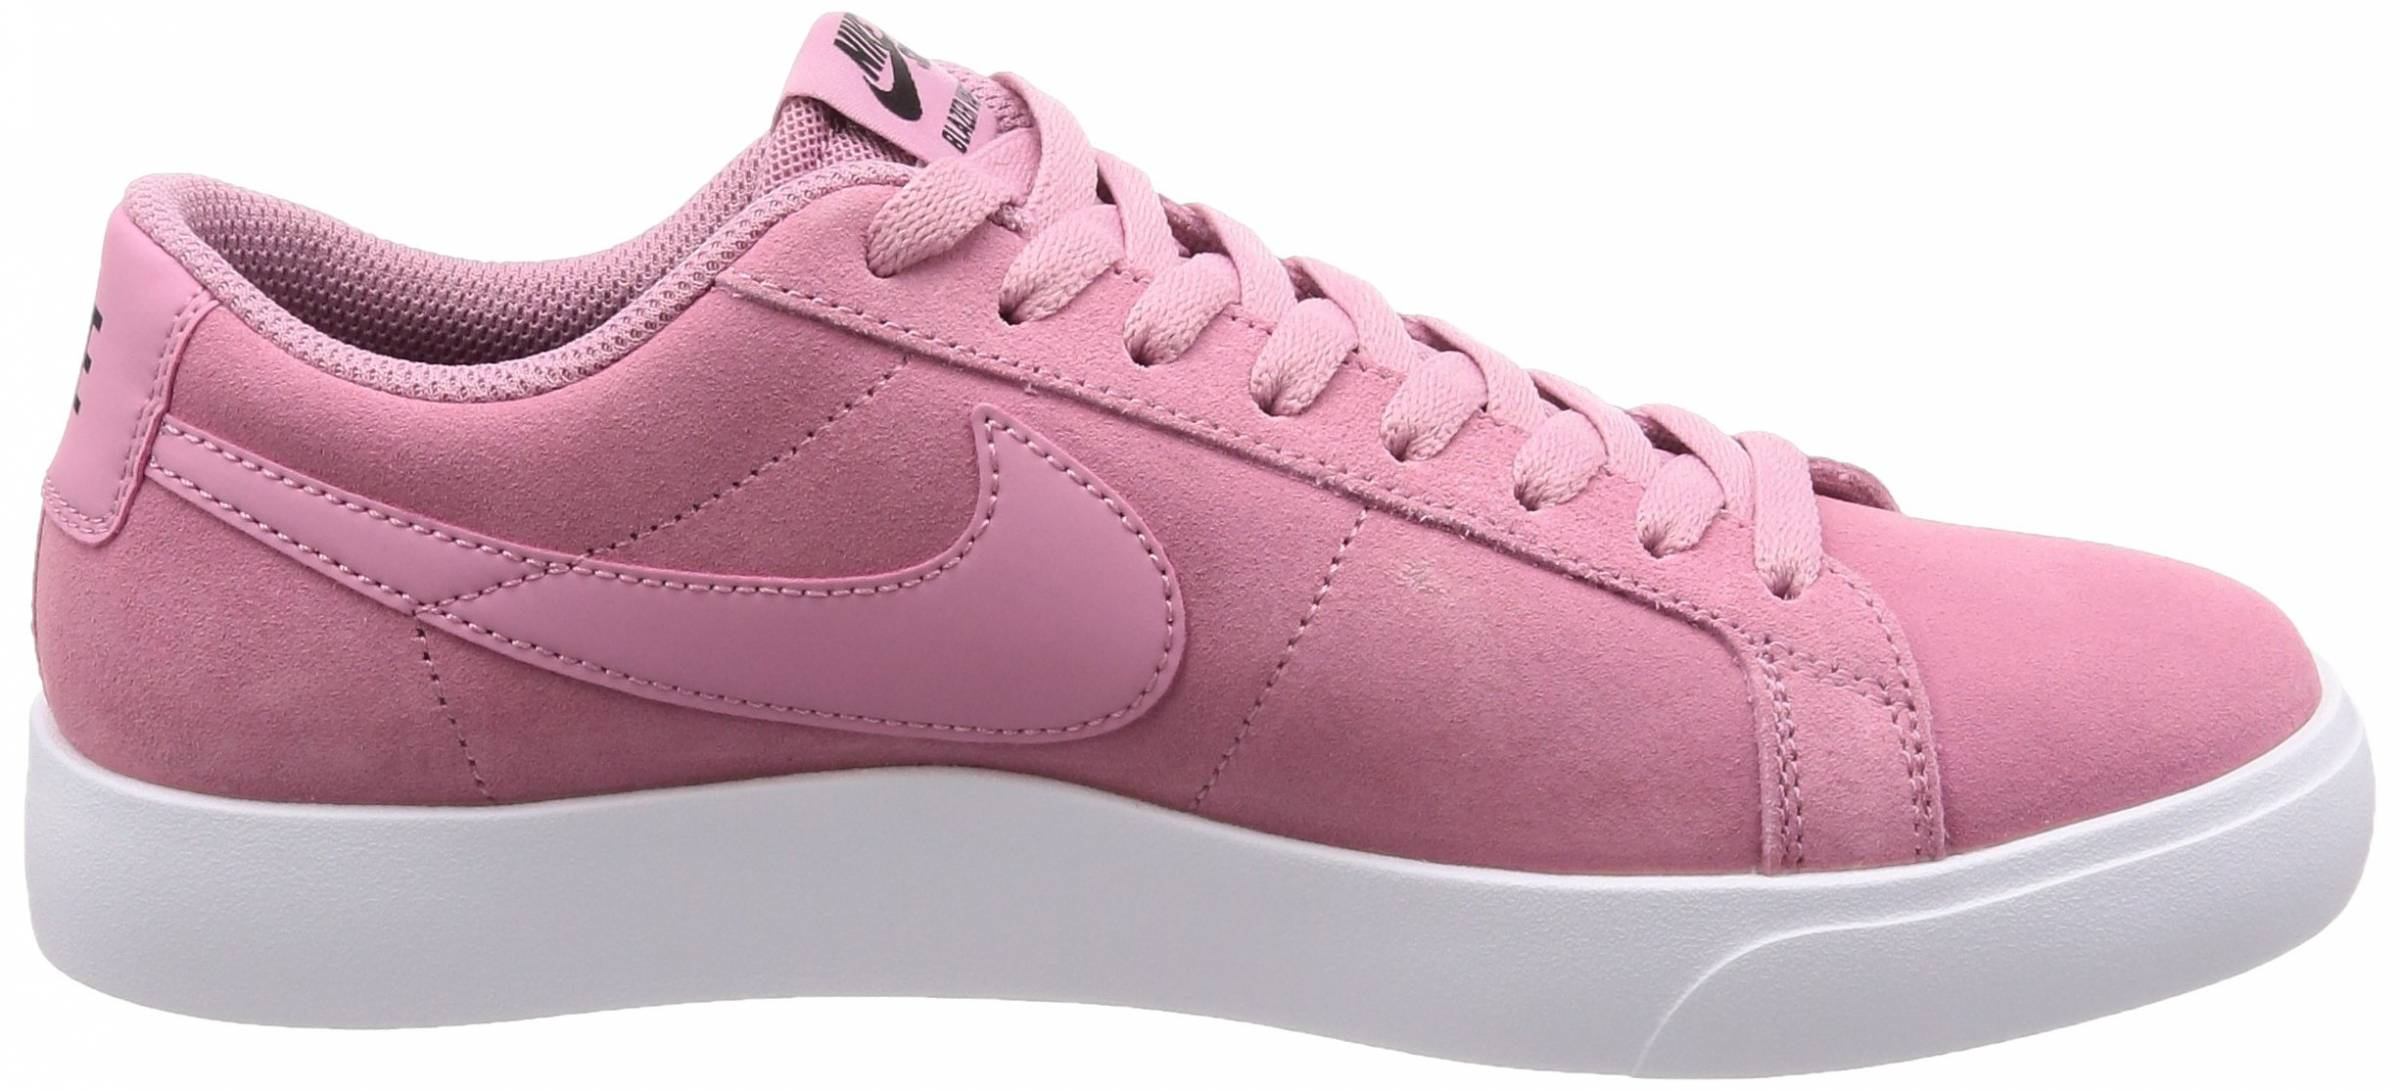 Save 37% on Pink Nike Sneakers (15